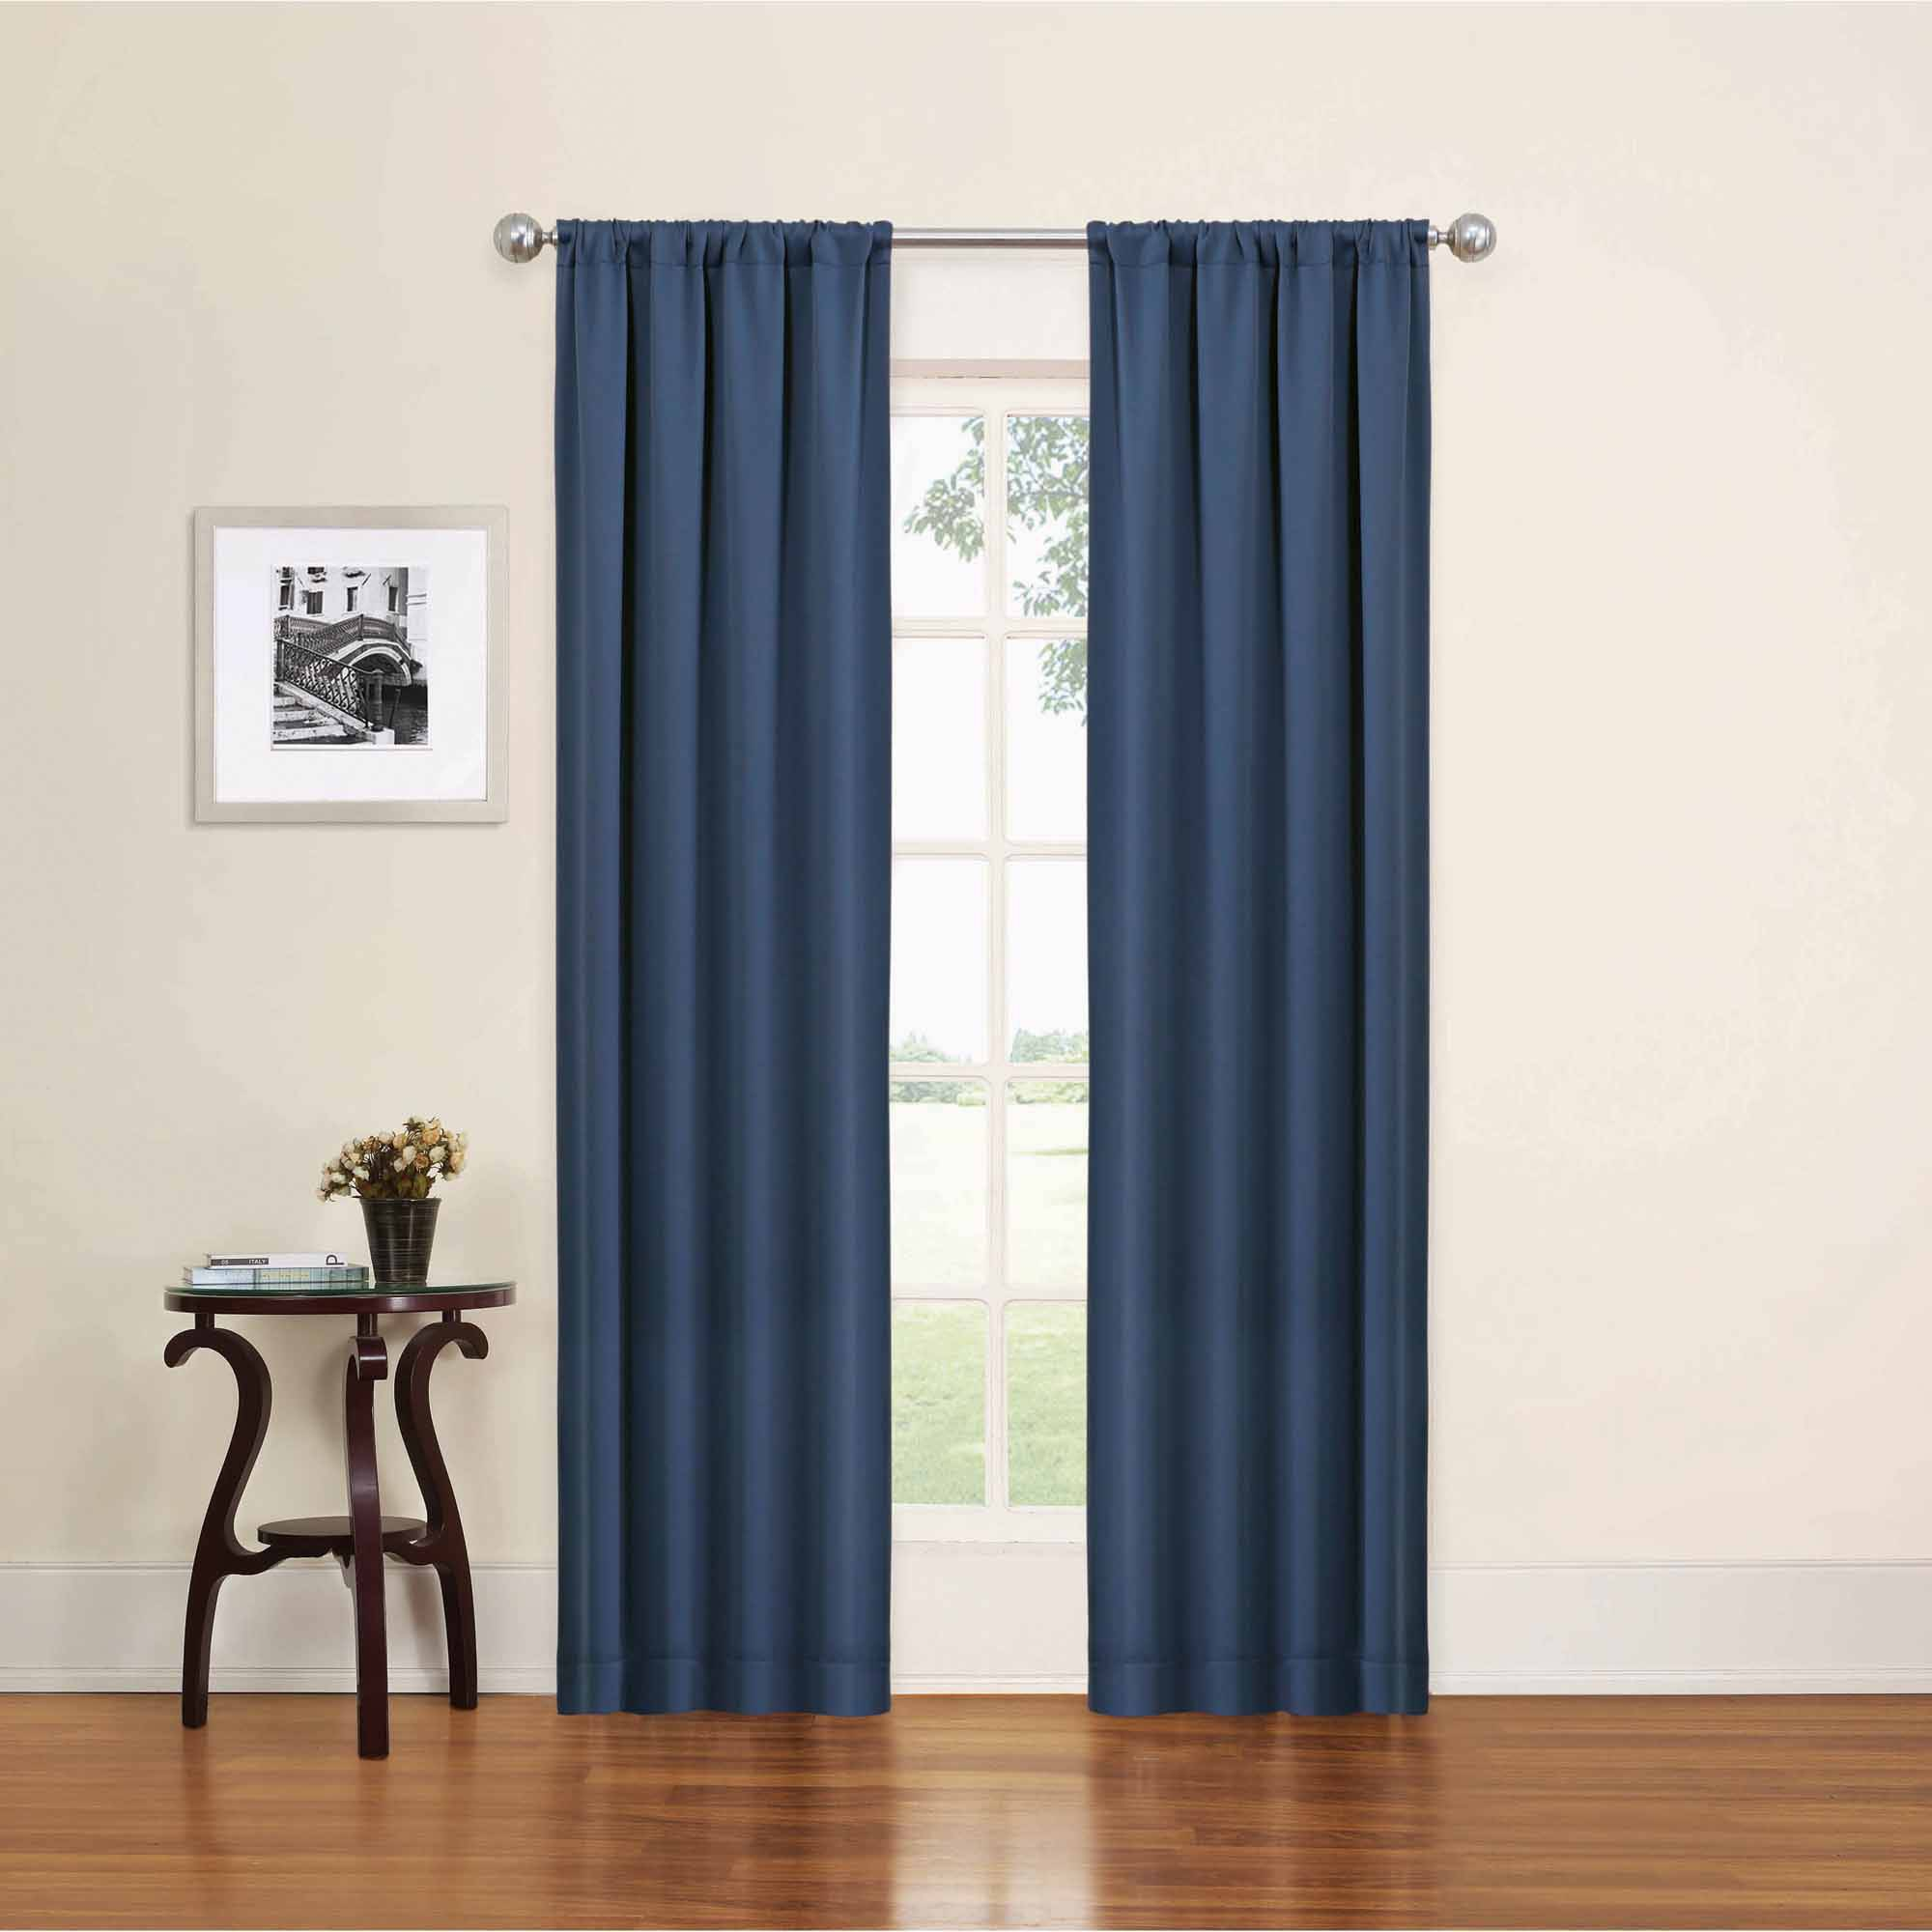 Thick Blackout Curtains | Cheap Blackout Curtains | Dark Brown Blackout Curtains